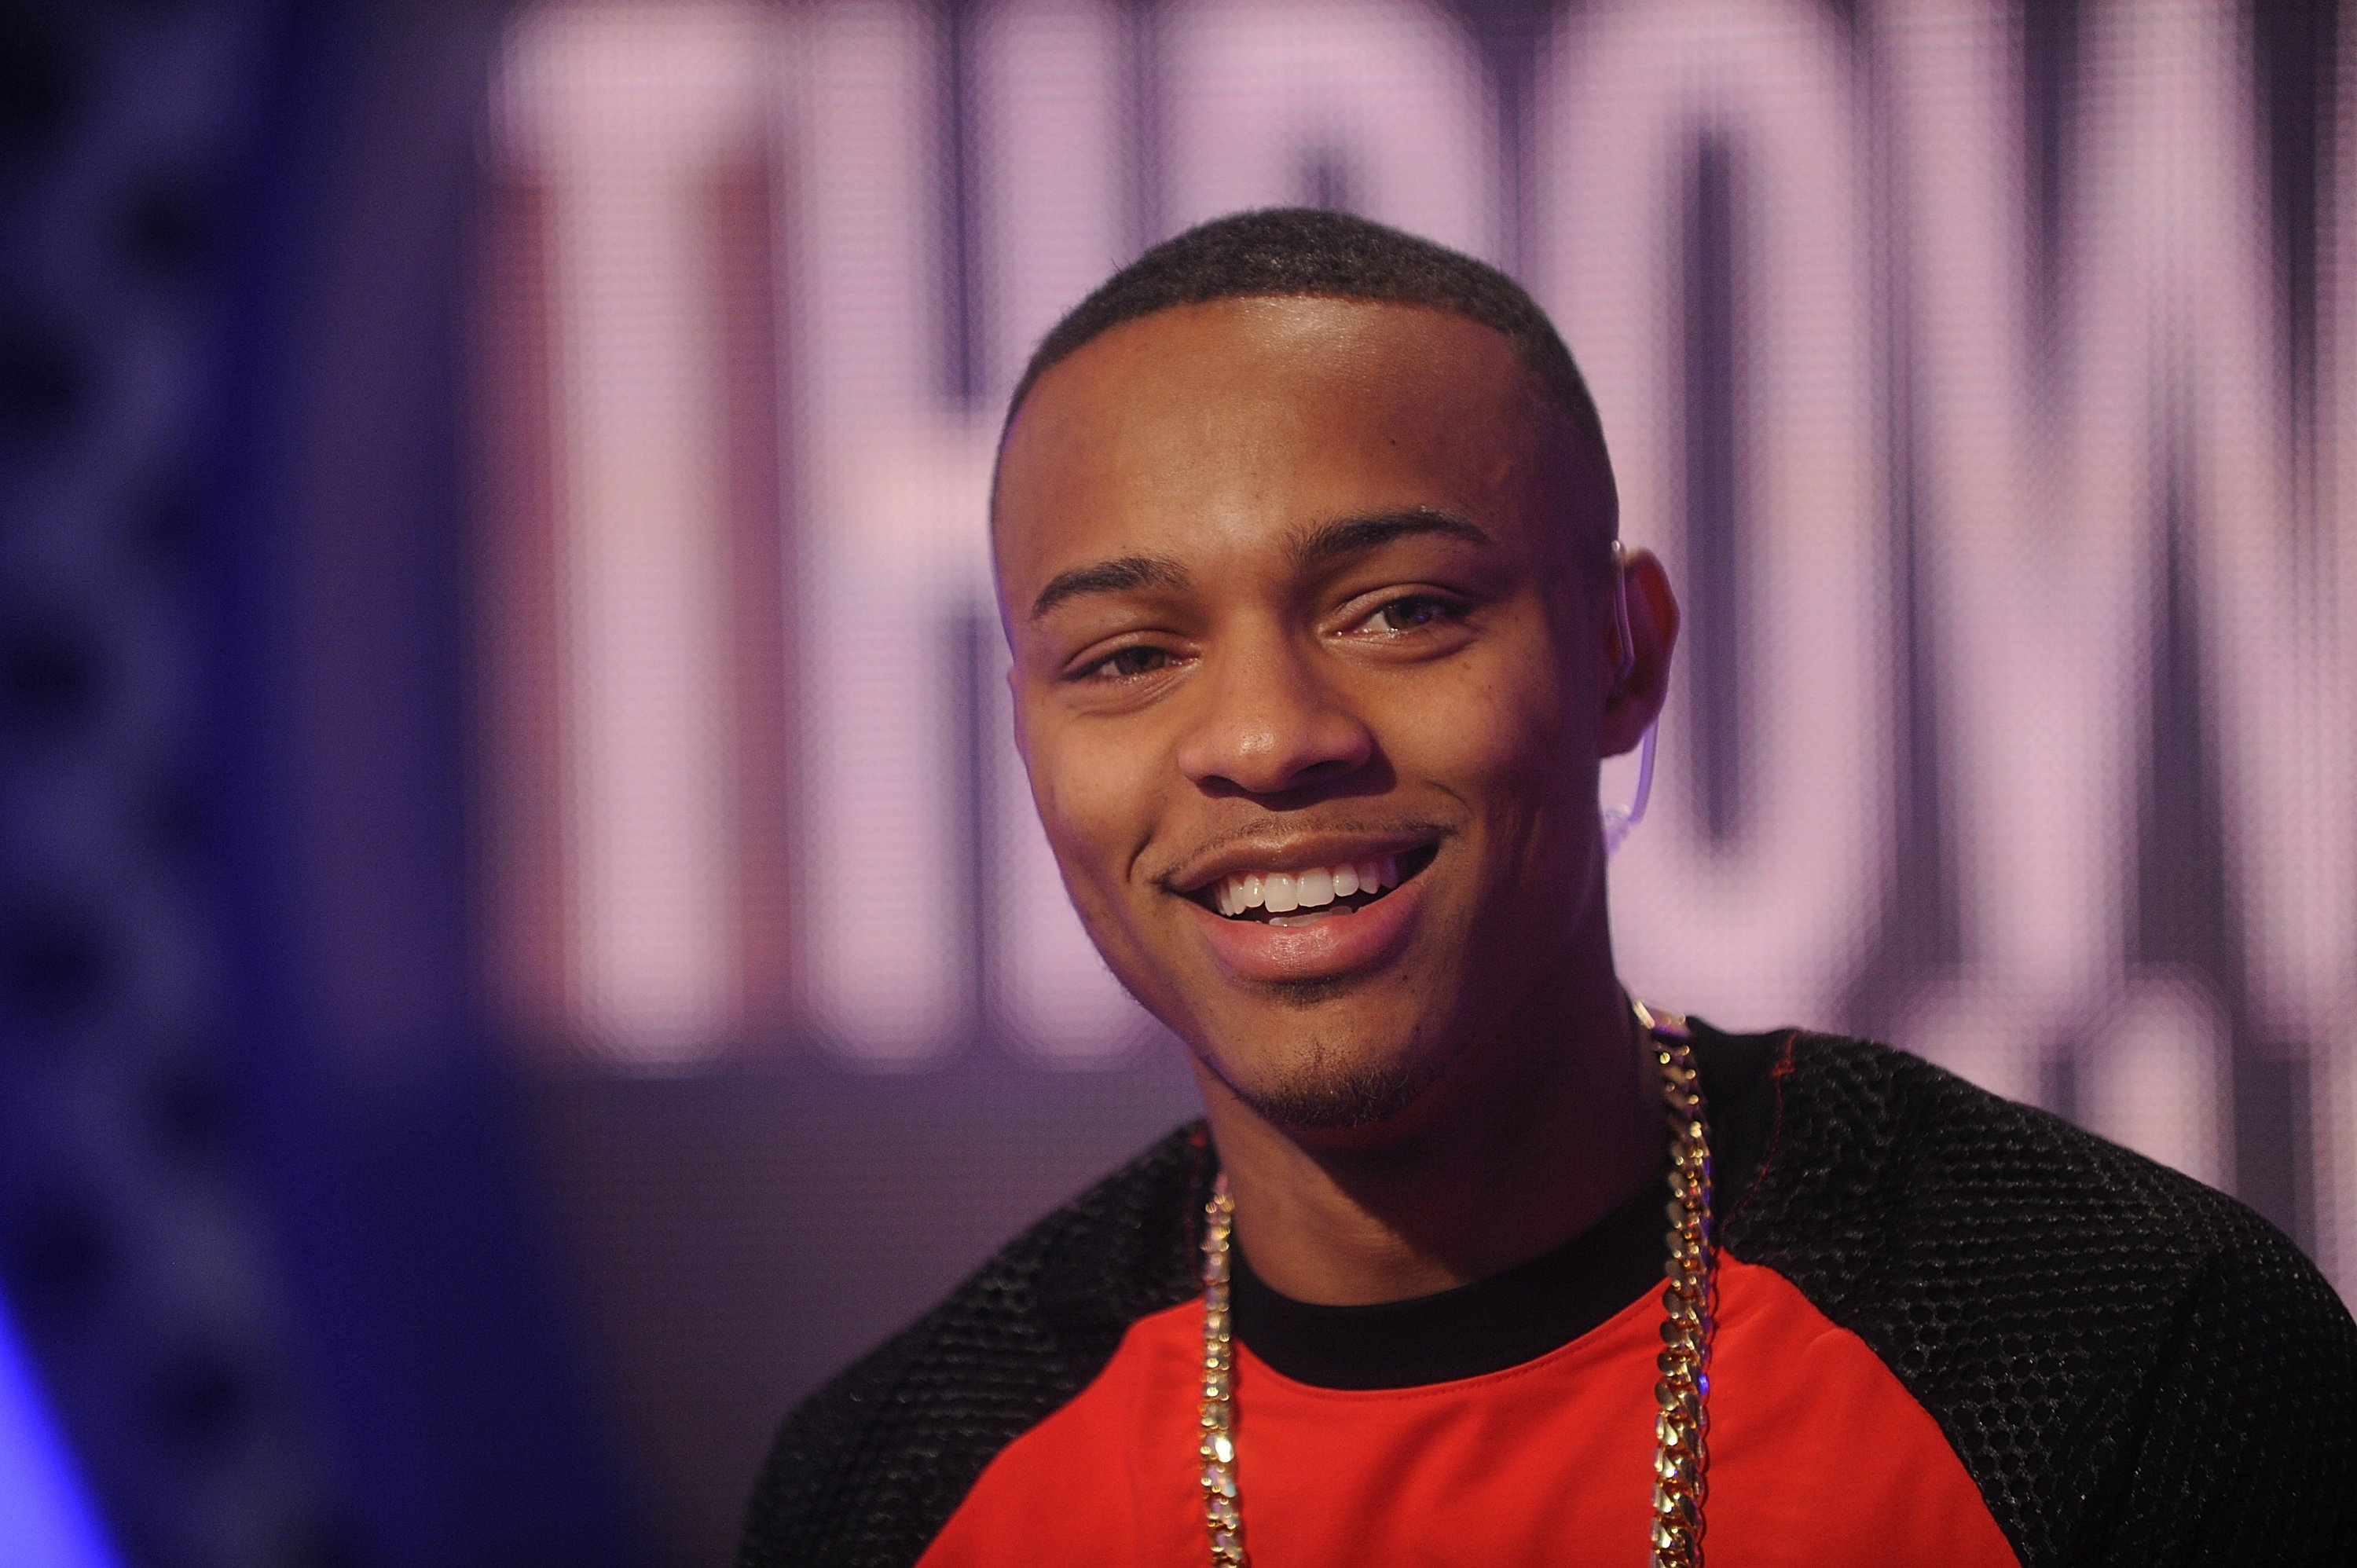 Bow Wow at the BET 106 and Park in New York City, 2014 | Source: Getty Images